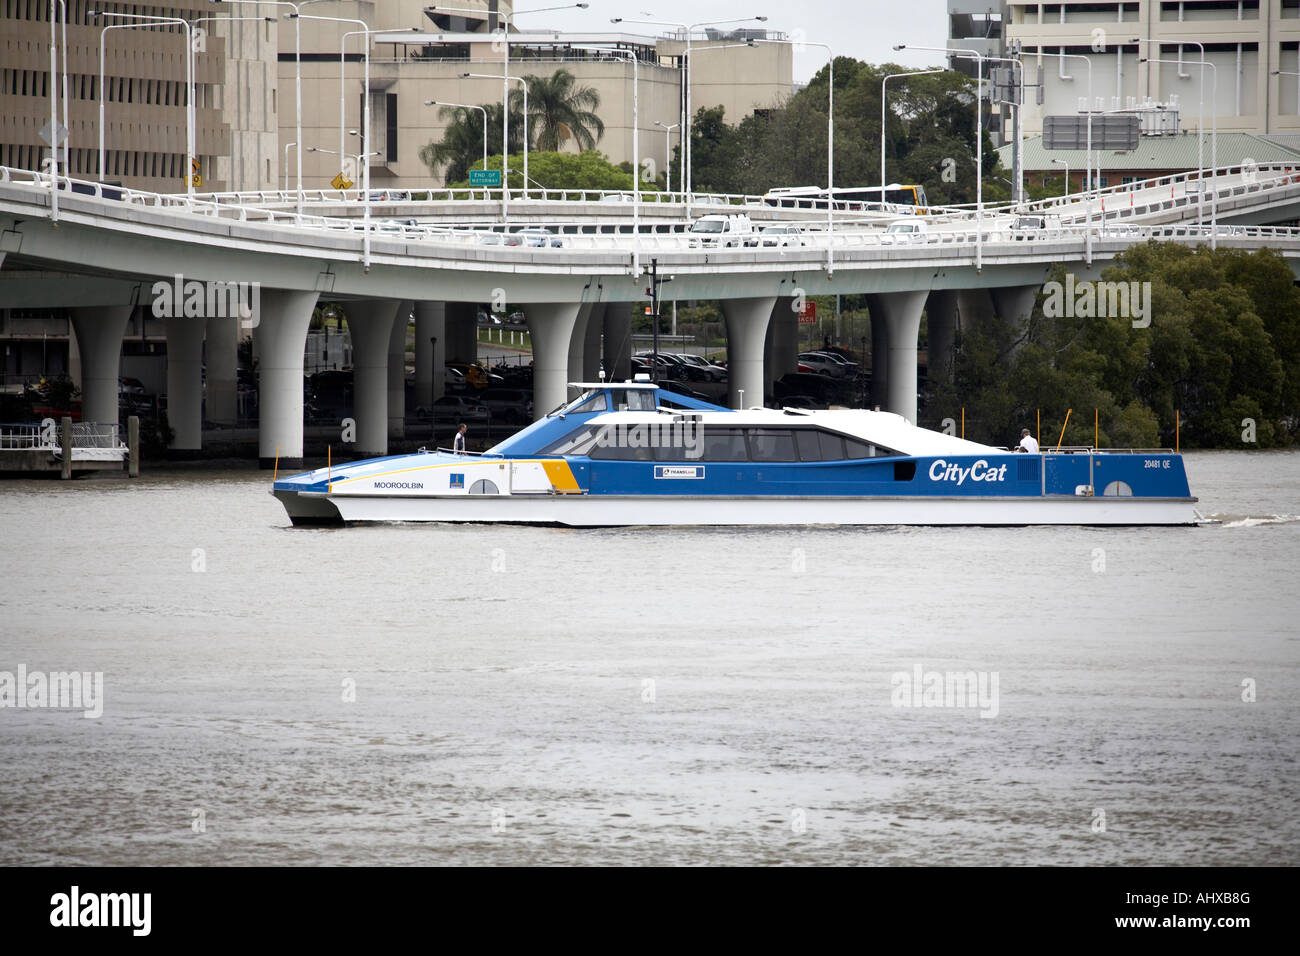 City Cat Catamaran high speed ferry with flyovers in Brisbane Queensland QLD Australia - Stock Image